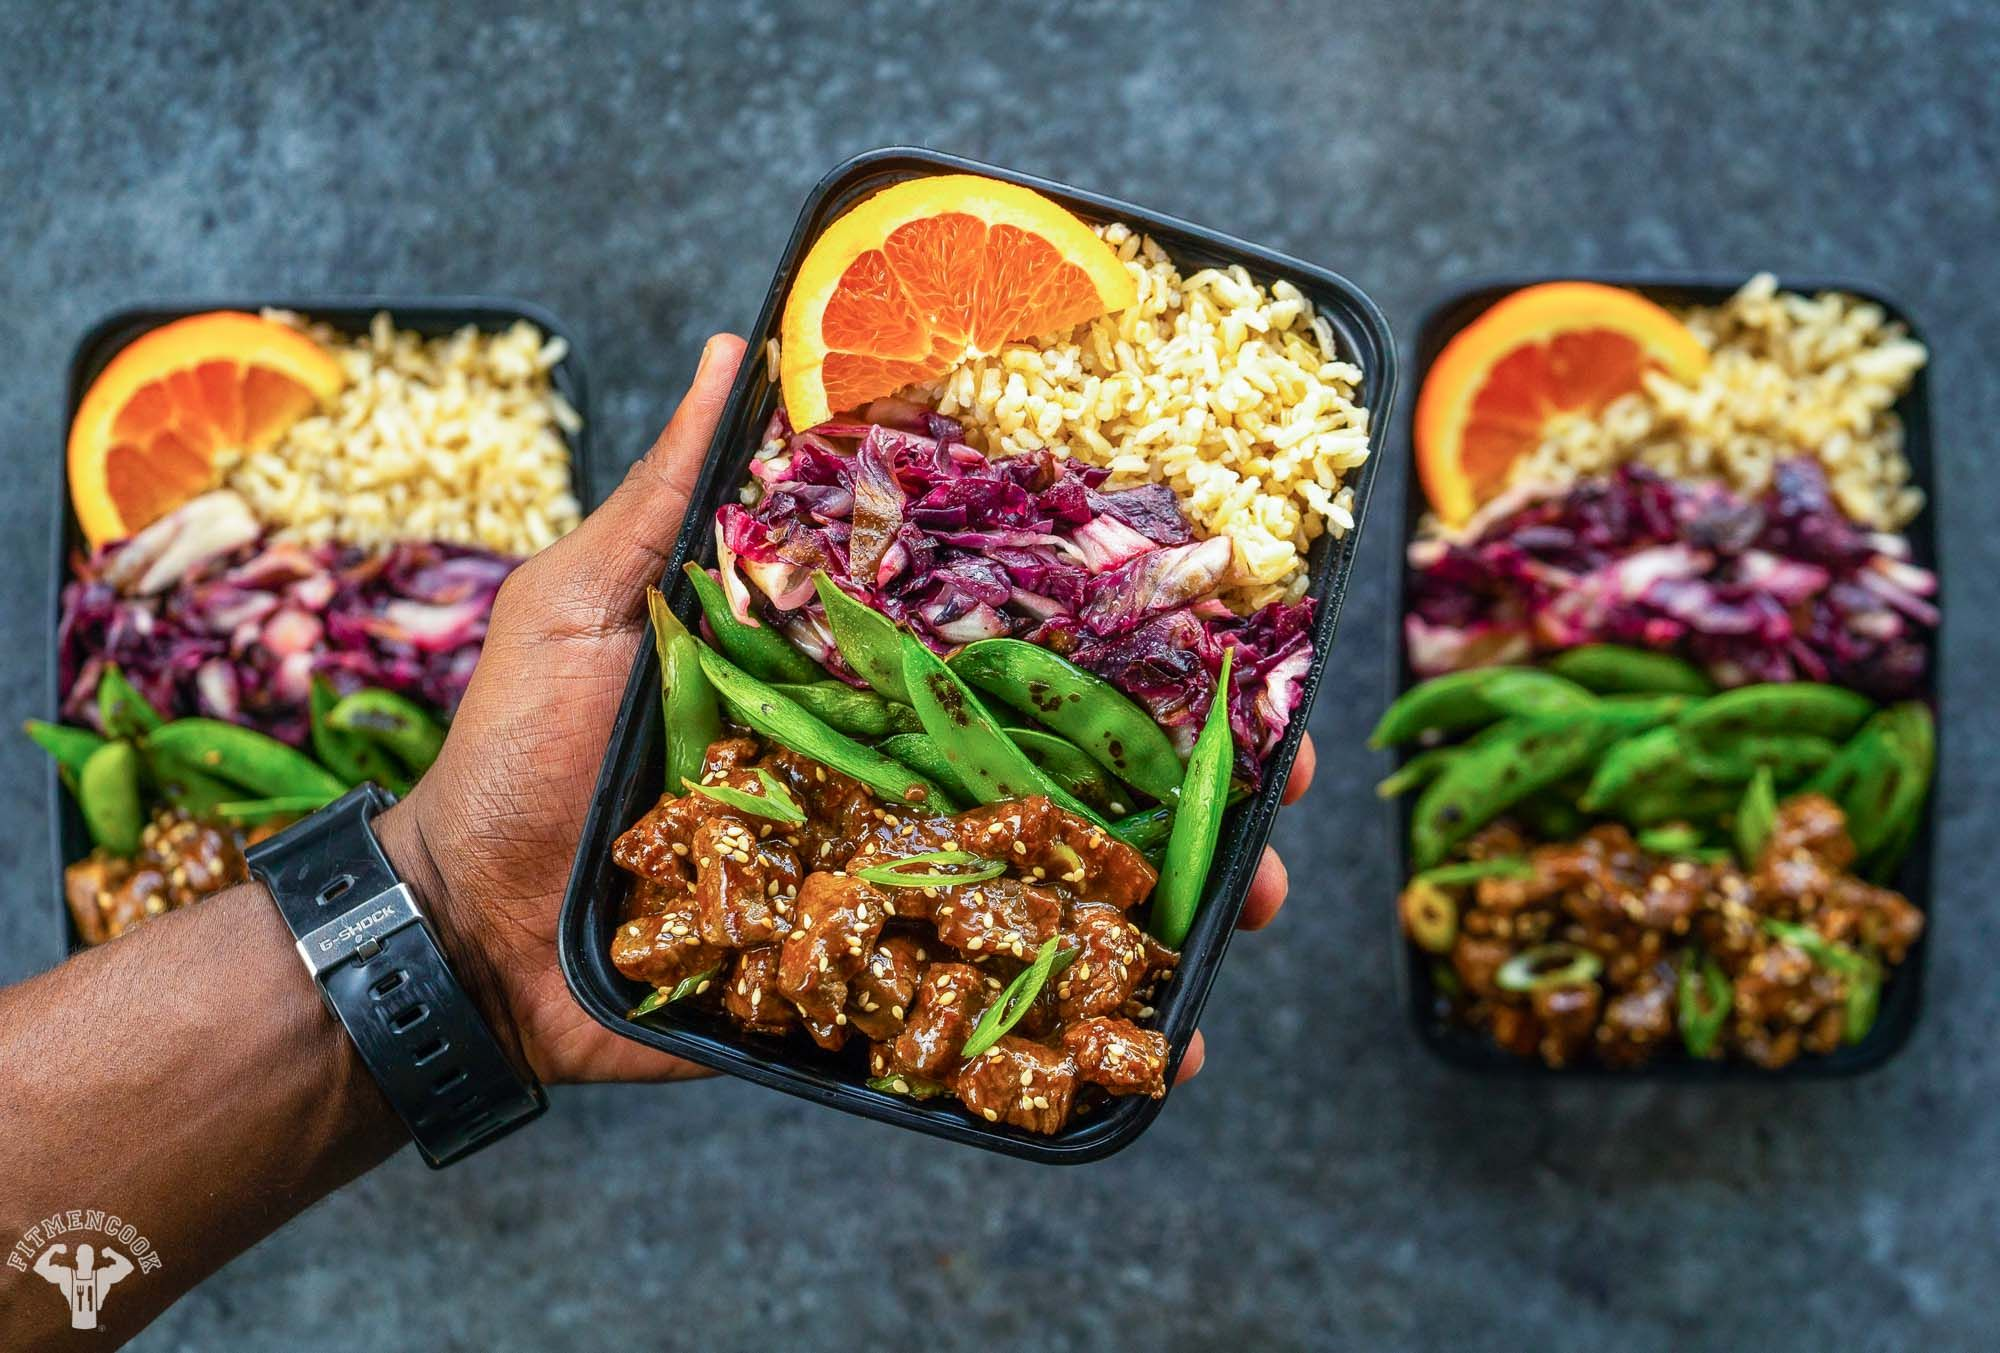 See How To Meal Prep Sweet And Spicy Beef Recipe This Beef Meal Prep Is Perfect As A Post Workout Meal Workout Food Meal Prep Clean Eating Delicious Meal Prep